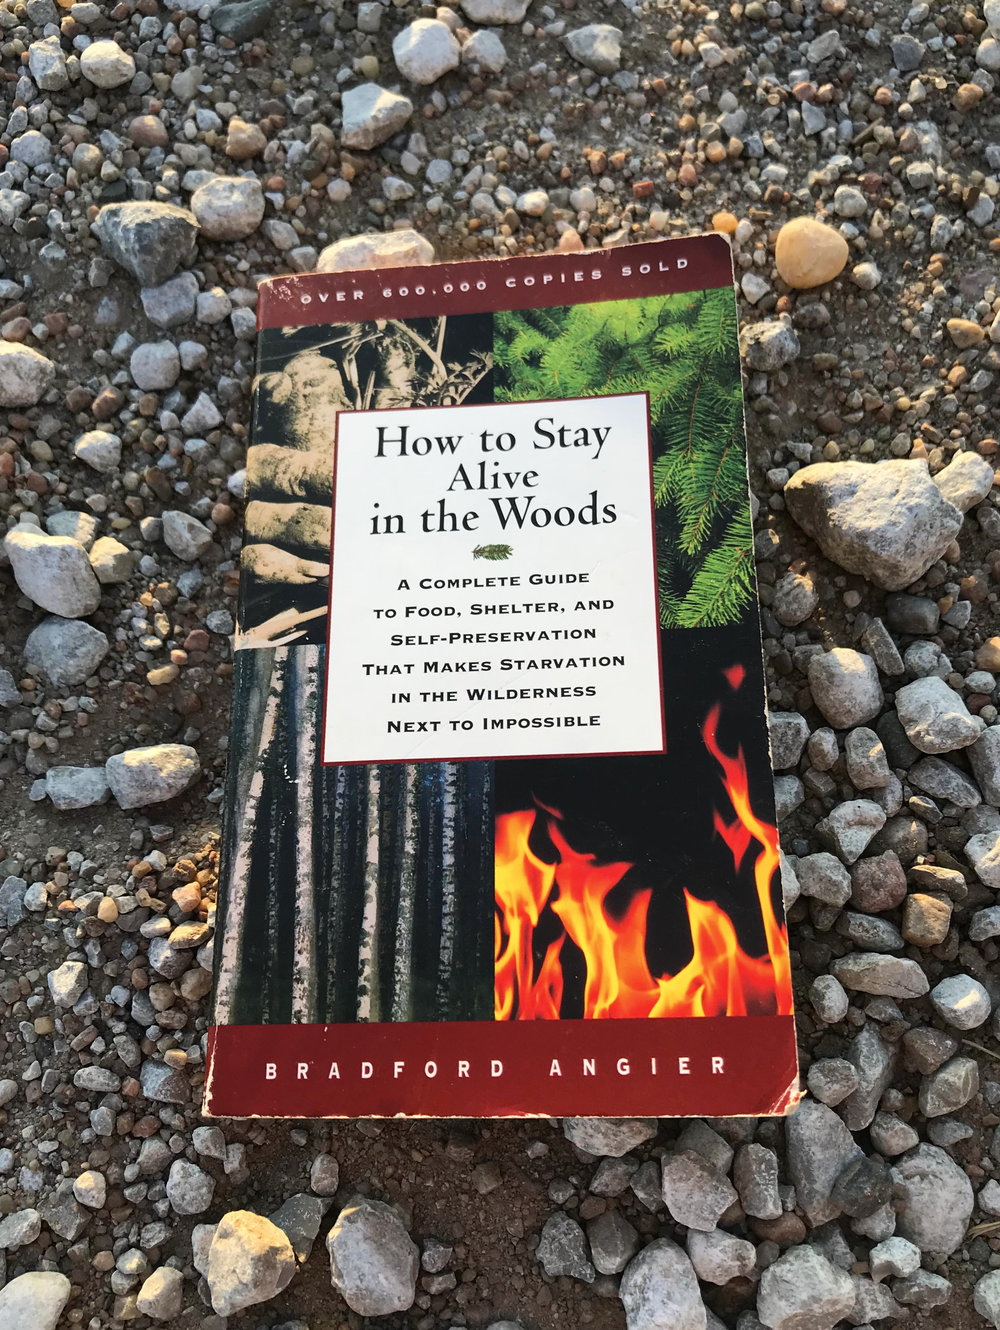 How to Stay Alive in the Woods by Bradford Angier